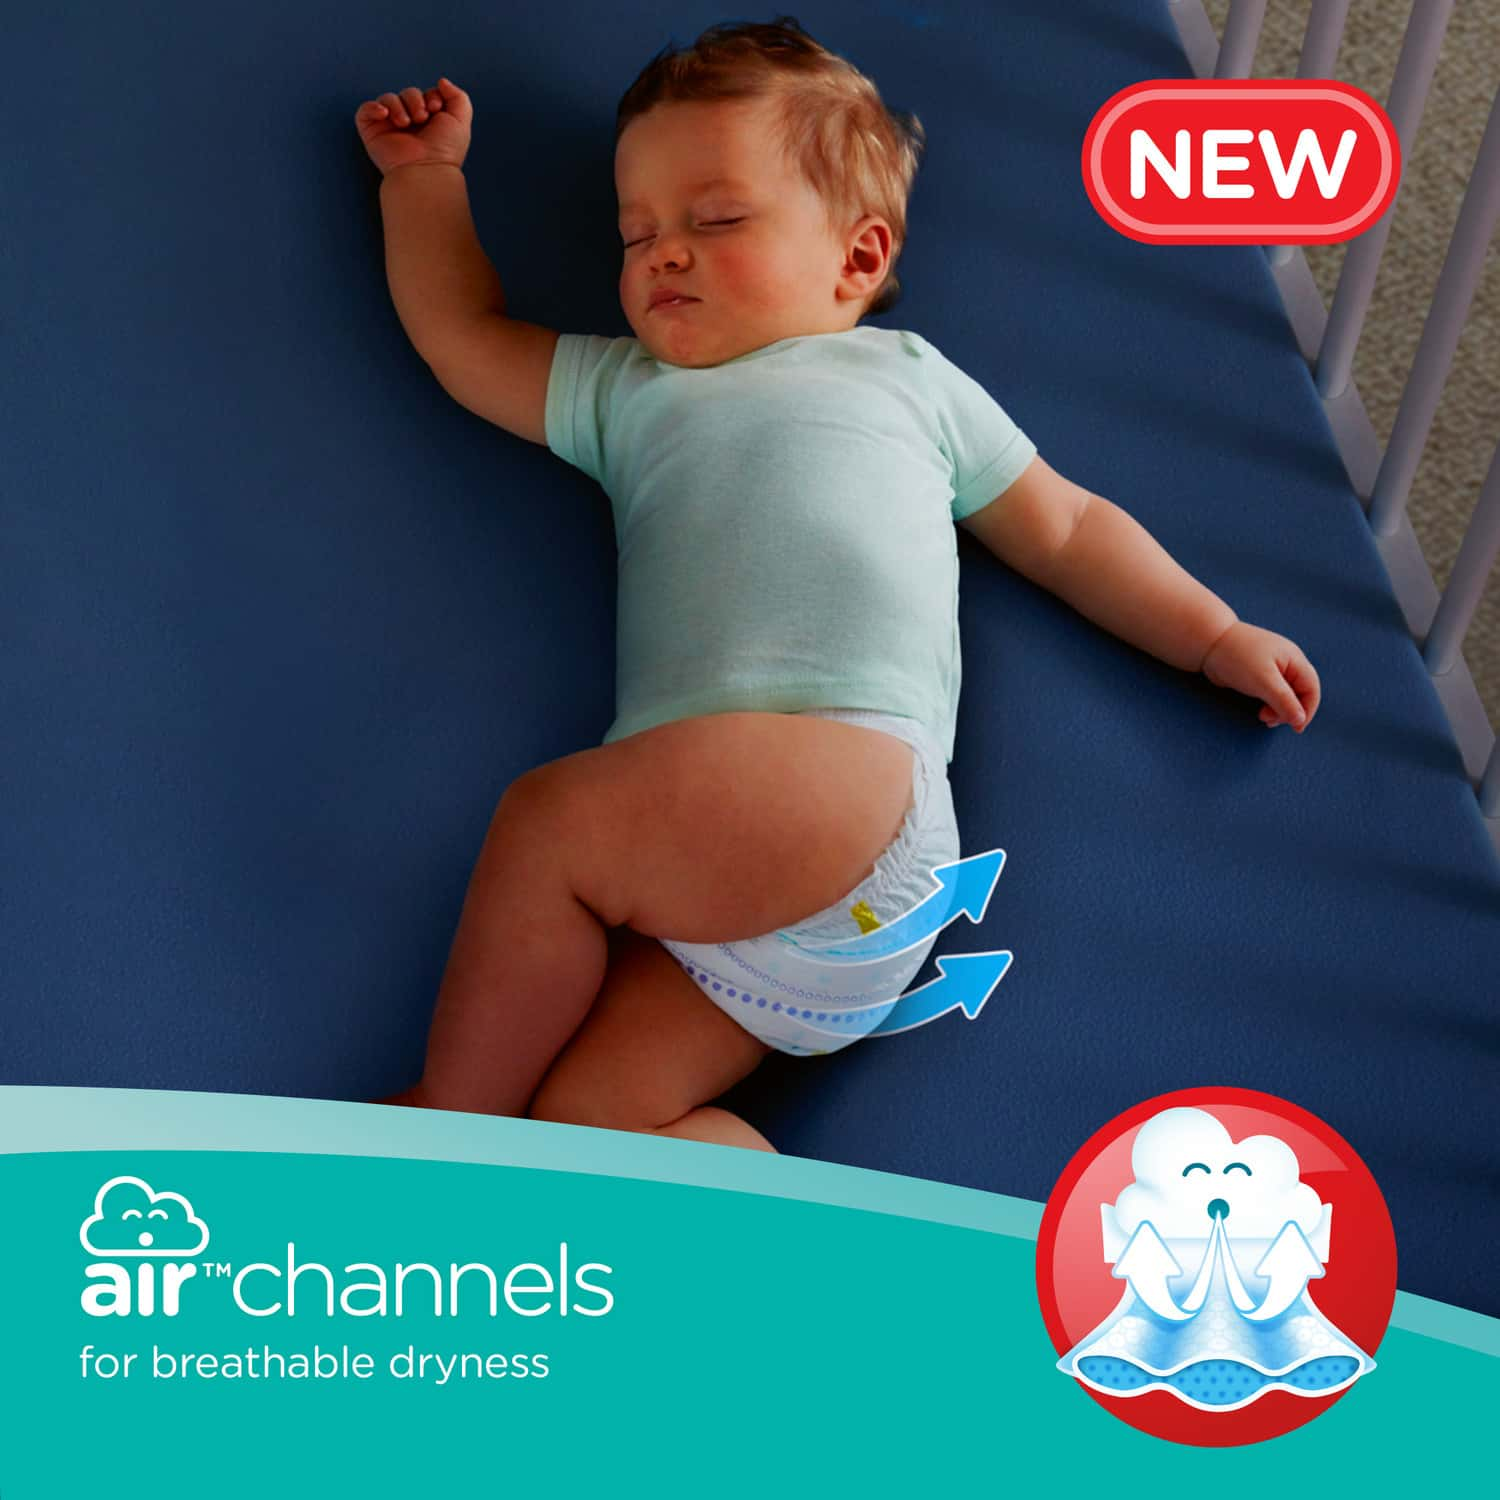 Pampers New X-large Size Diapers Pants, 112 Count